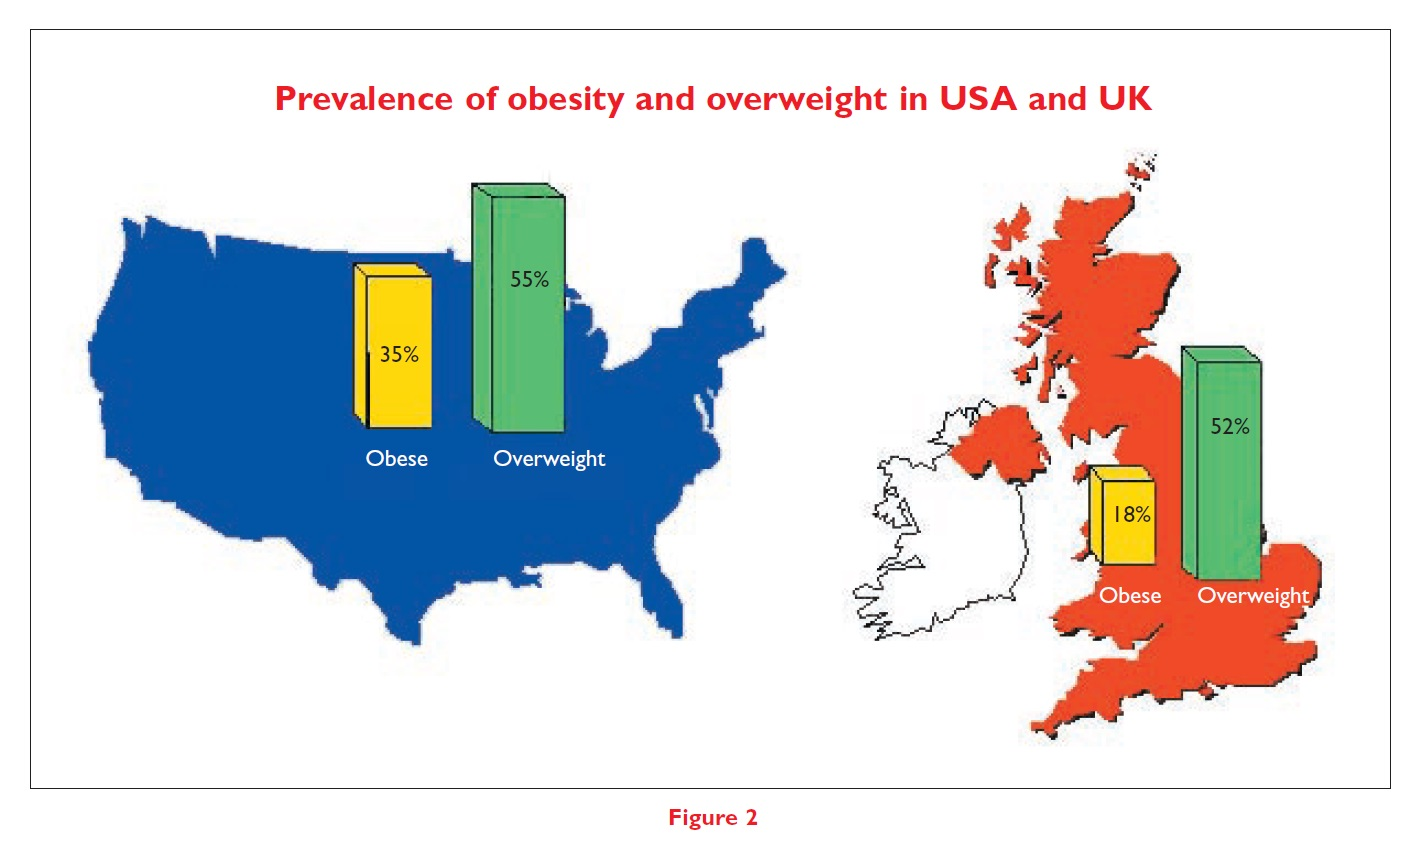 Figure 2 Prevalence of obesity and overweight in USA and UK